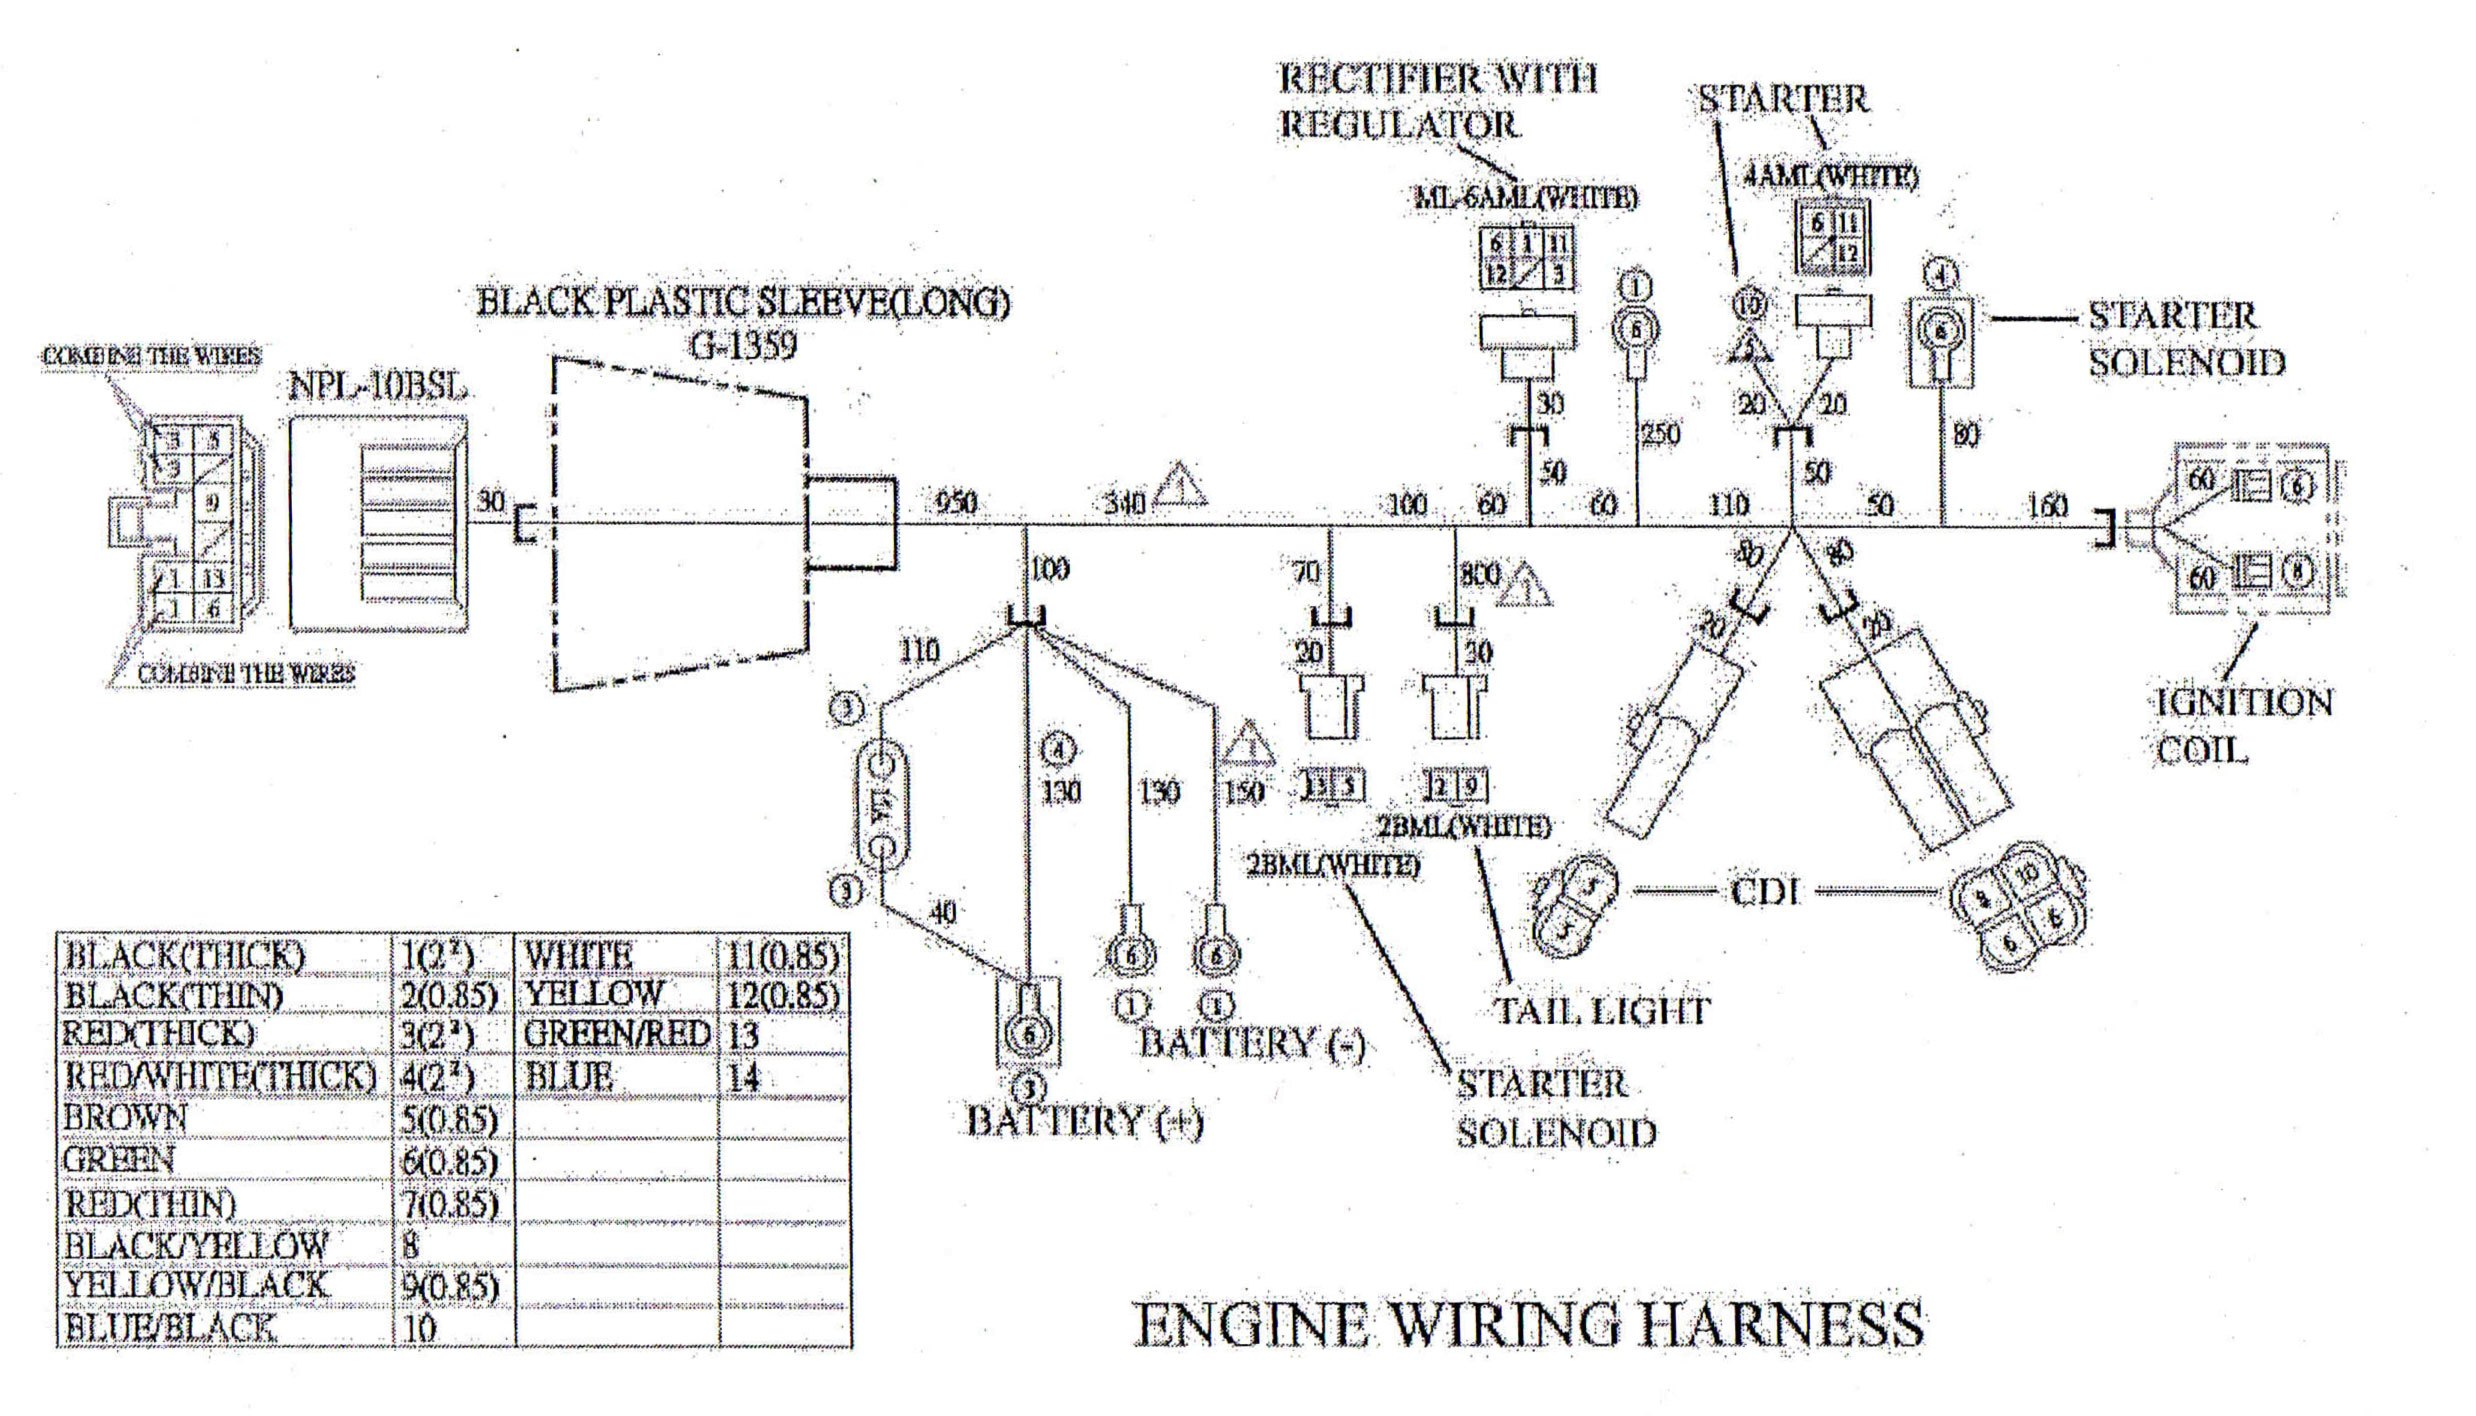 WX_2498] Generator Wiring Diagram For Honda Gx 120 Wiring DiagramAkeb Retr Dome Mohammedshrine Librar Wiring 101